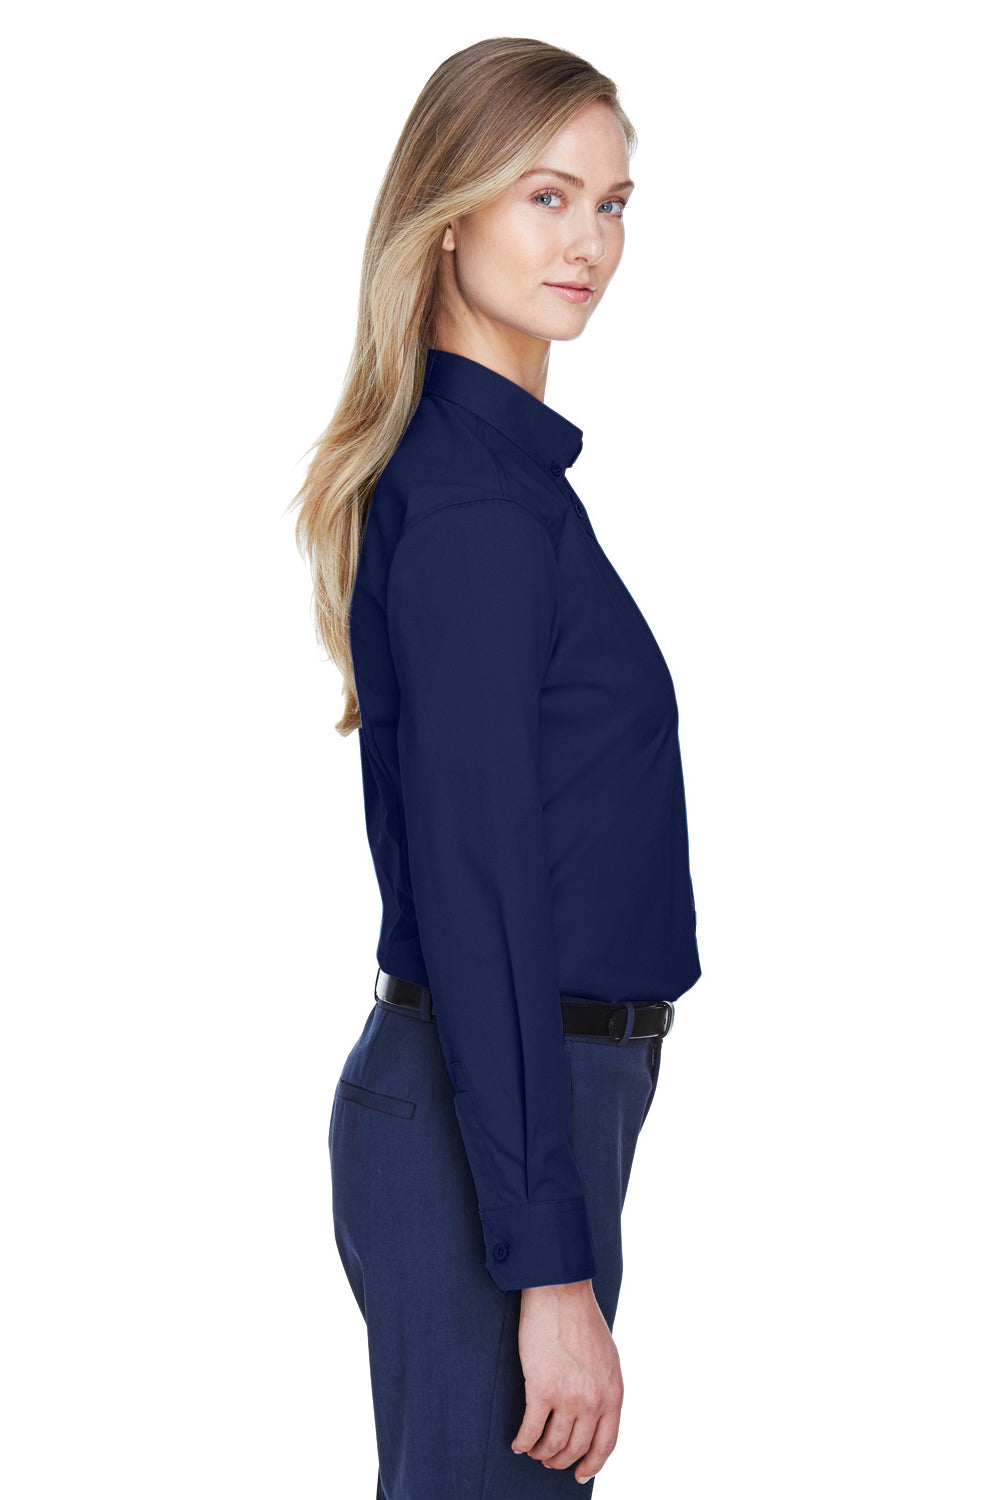 Core 365 78193 Womens Operate Long Sleeve Button Down Shirt Navy Blue Side